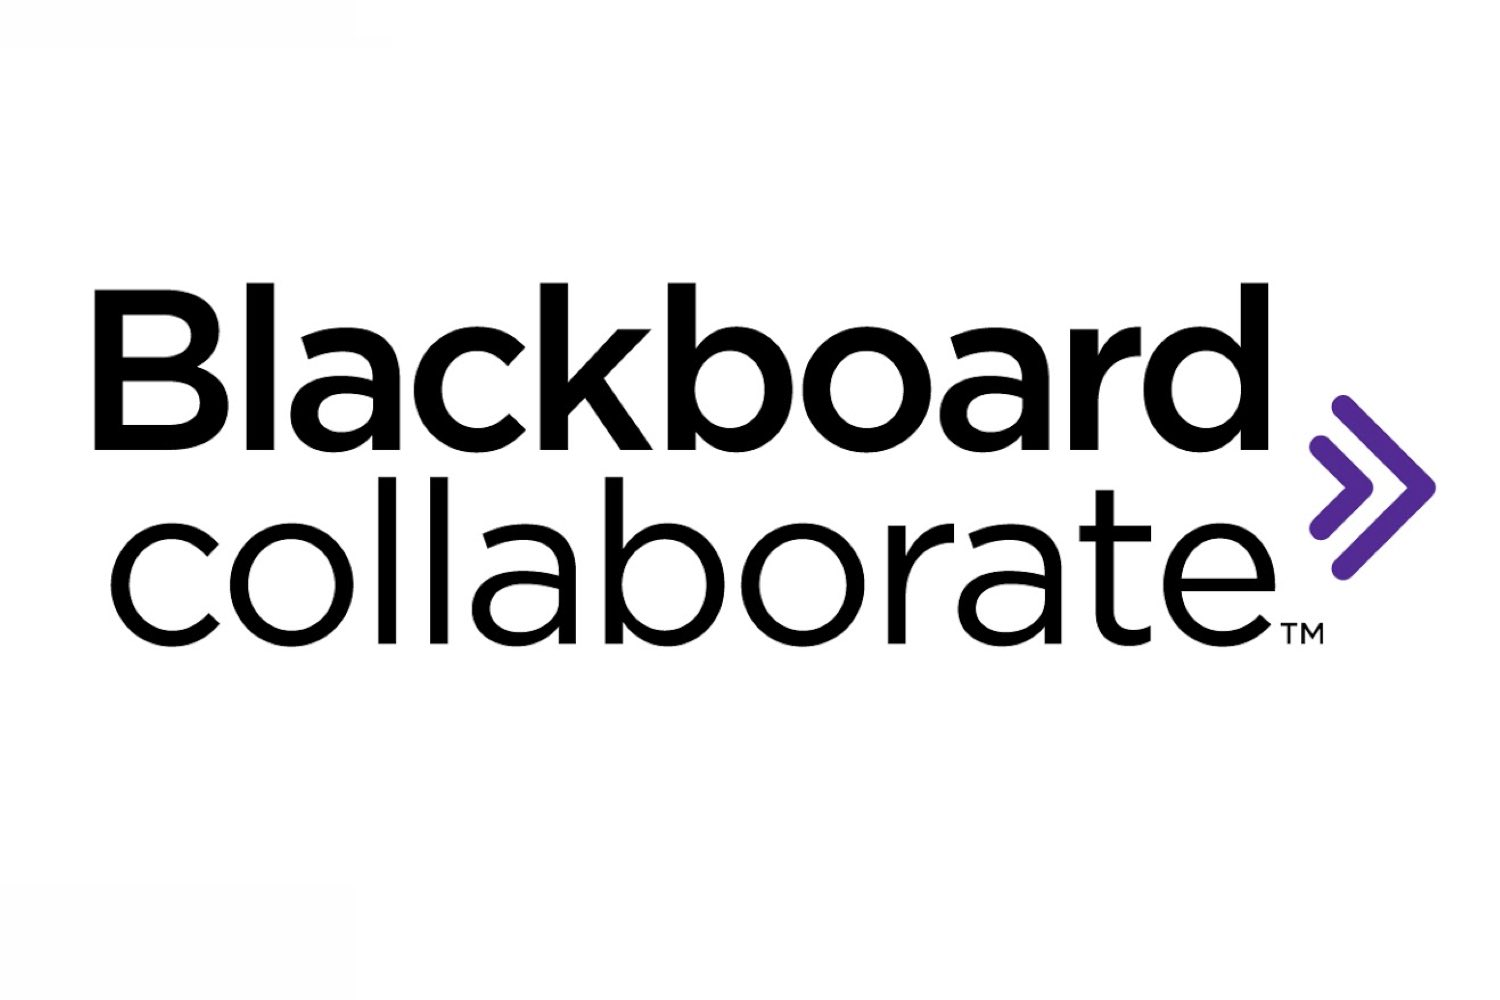 blackboard collaborate, black board software